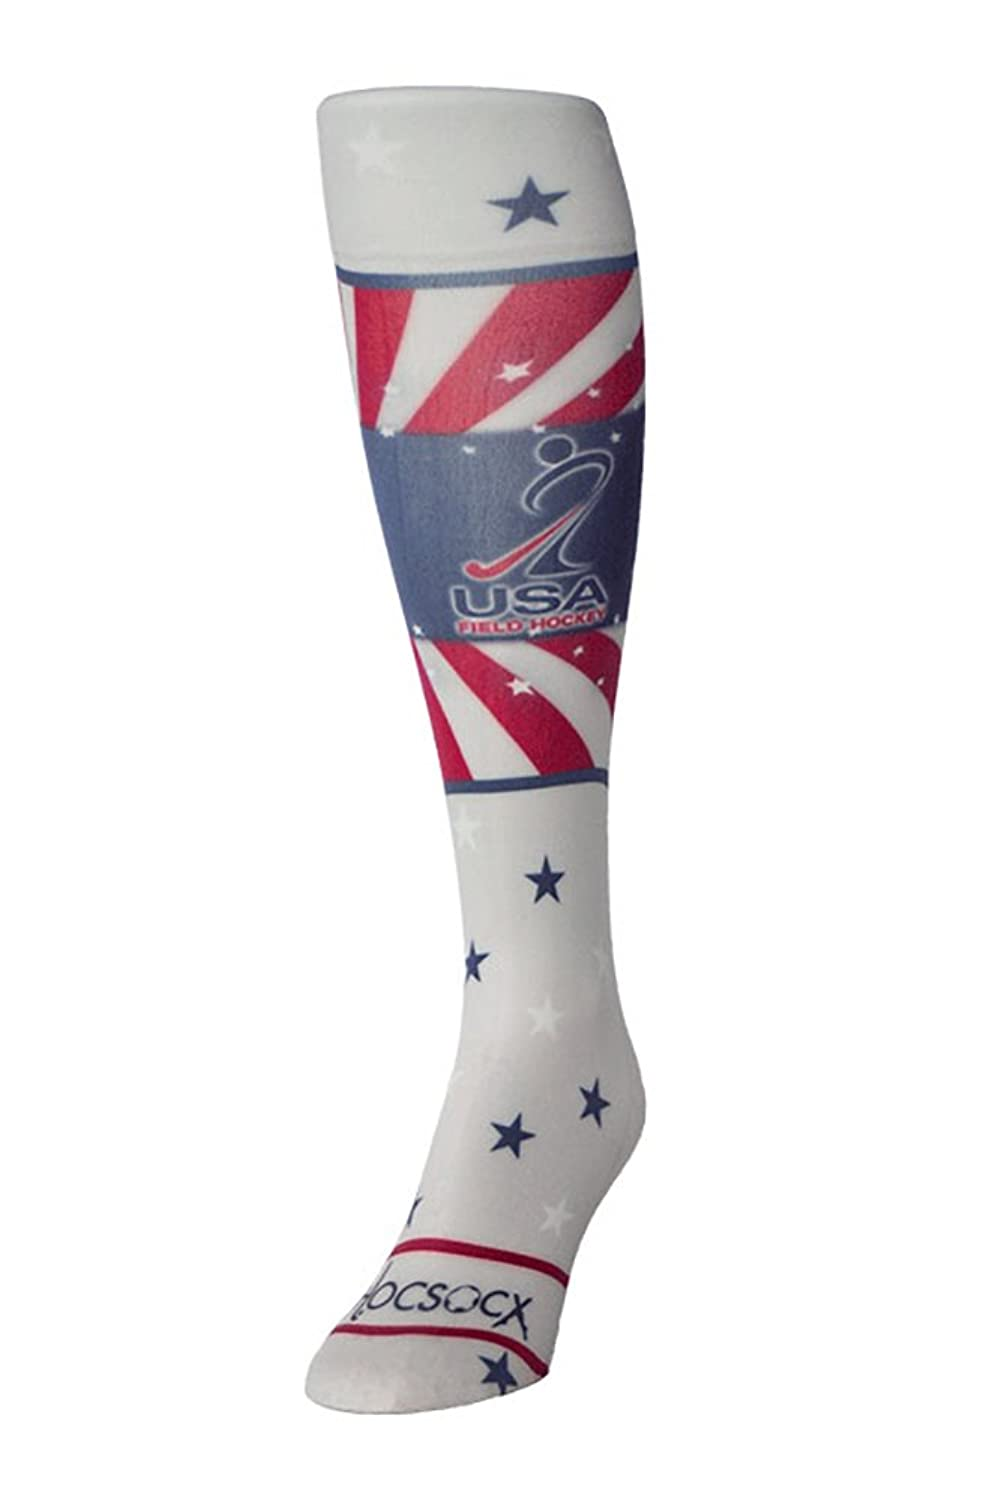 NEW FH USA Performance Hocsocx Womens 5-10